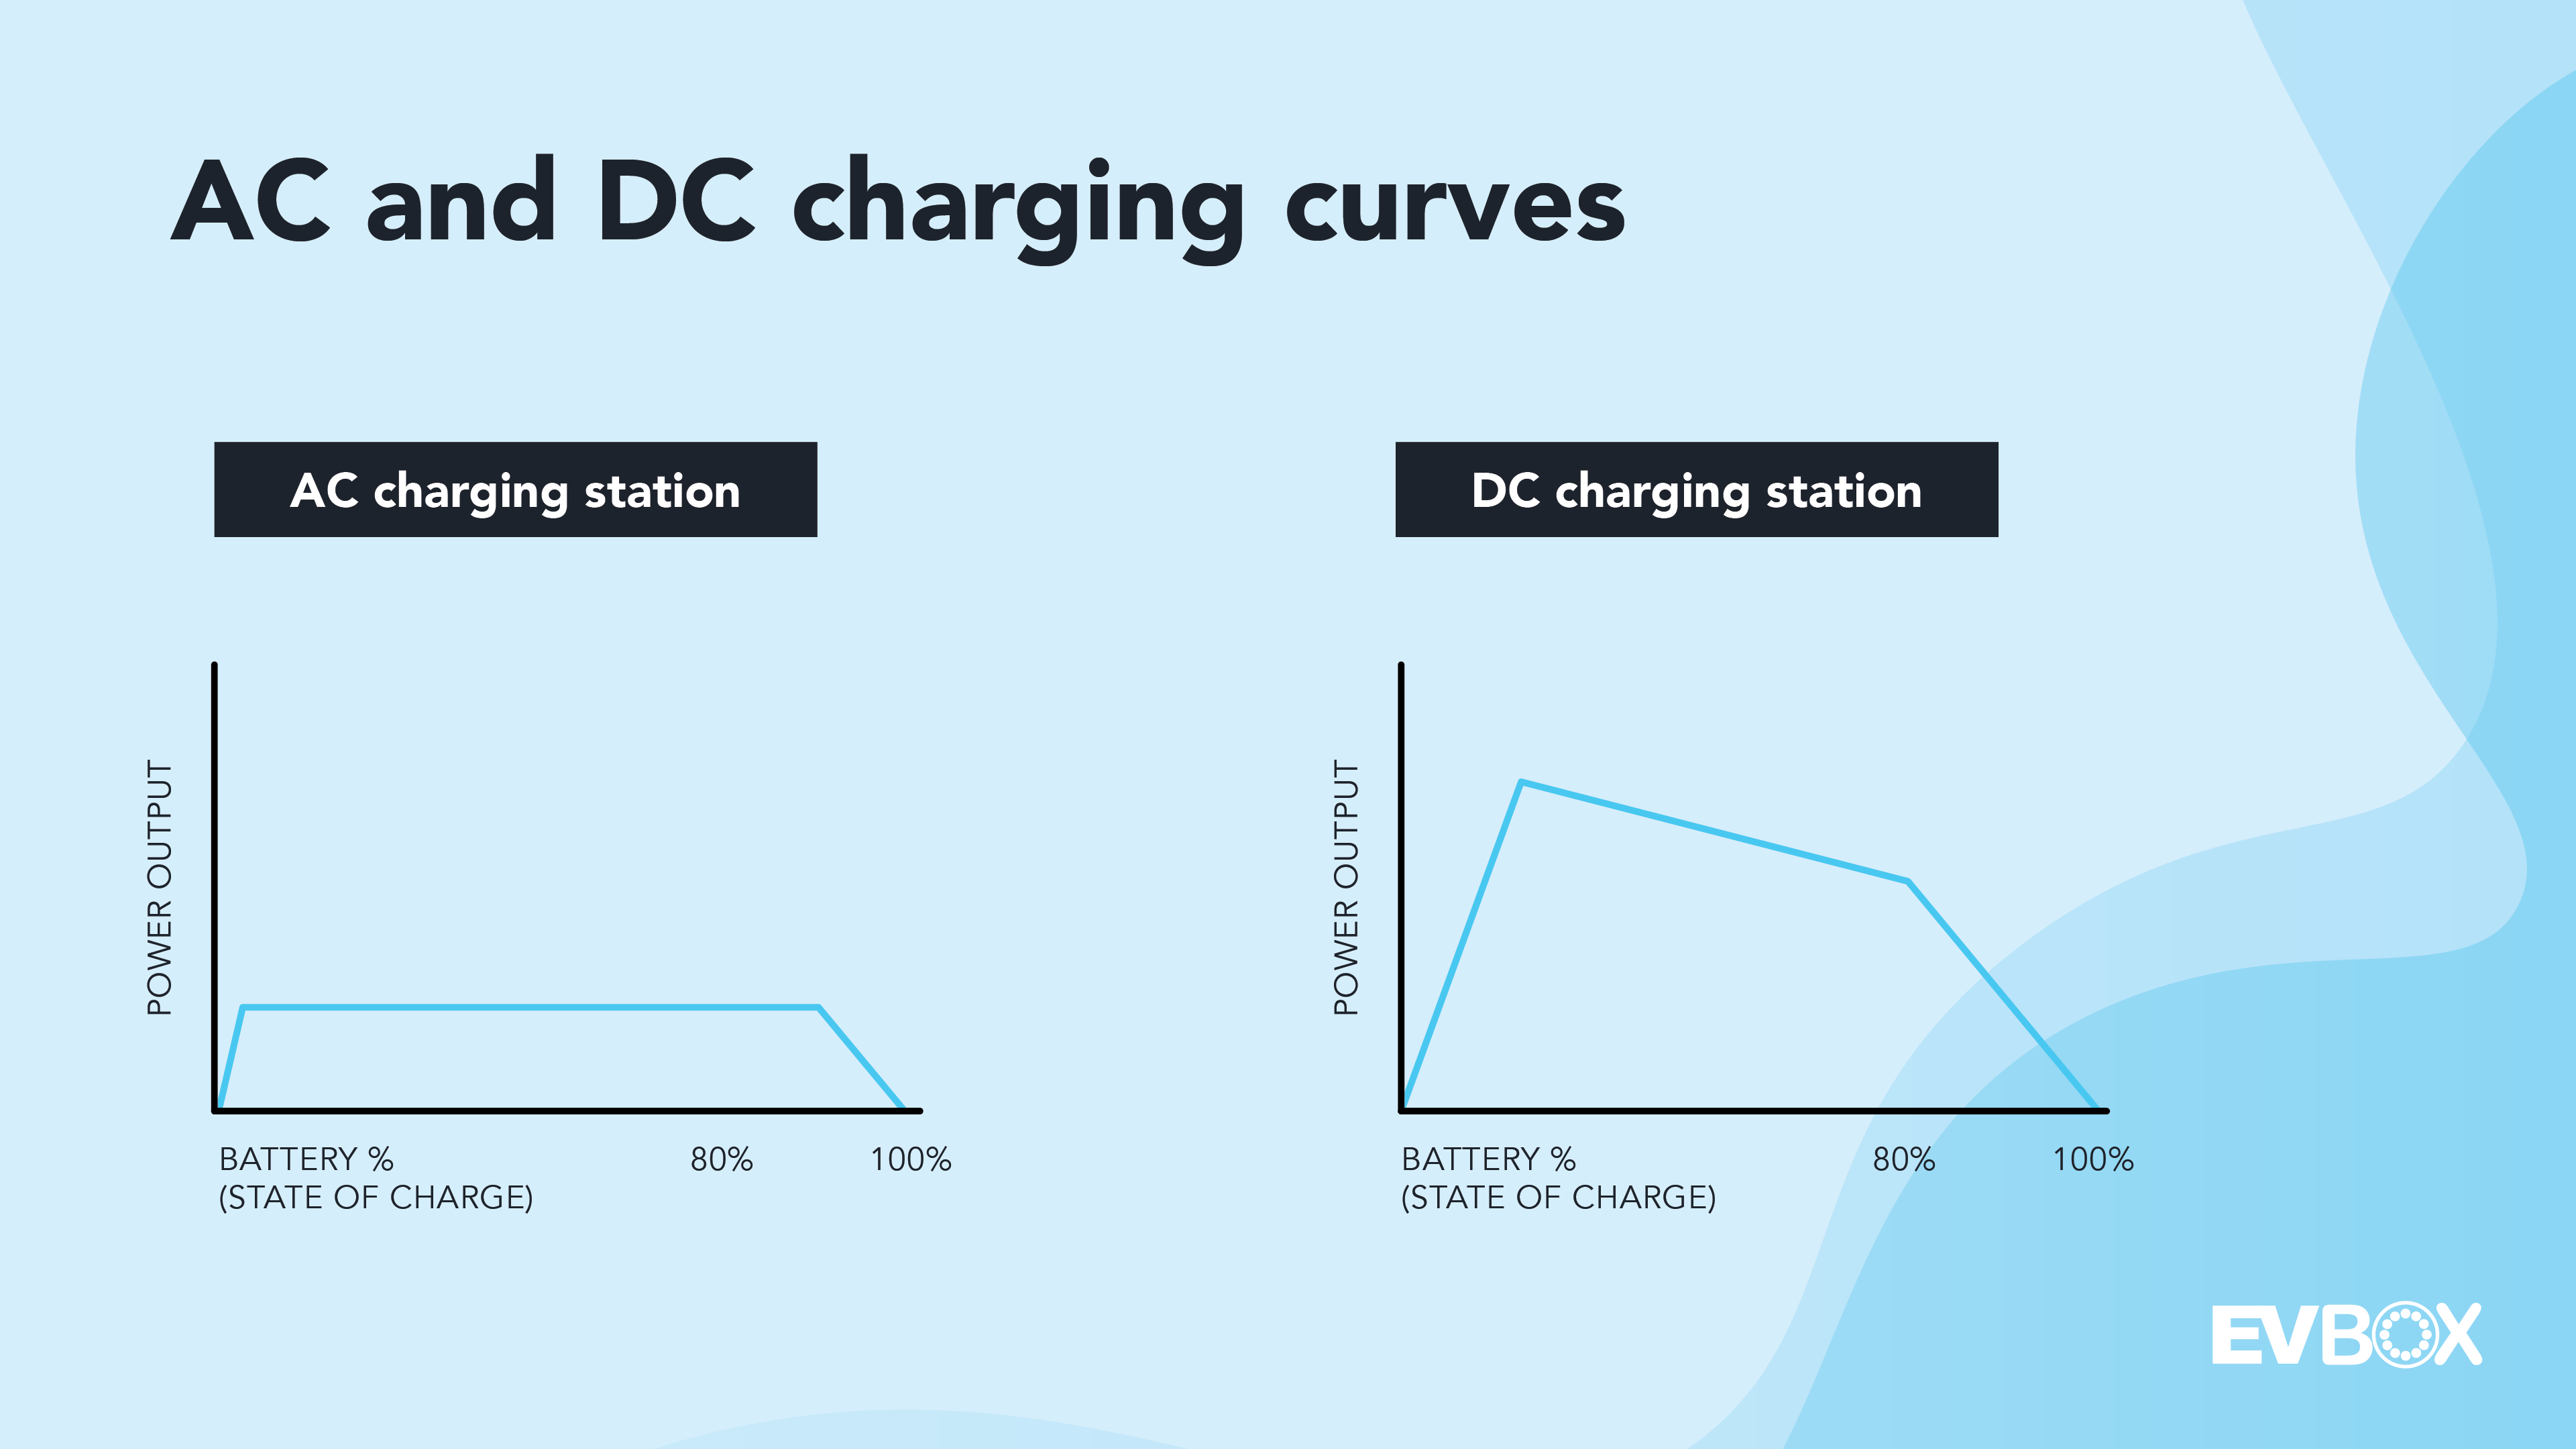 AC and DC charging curves